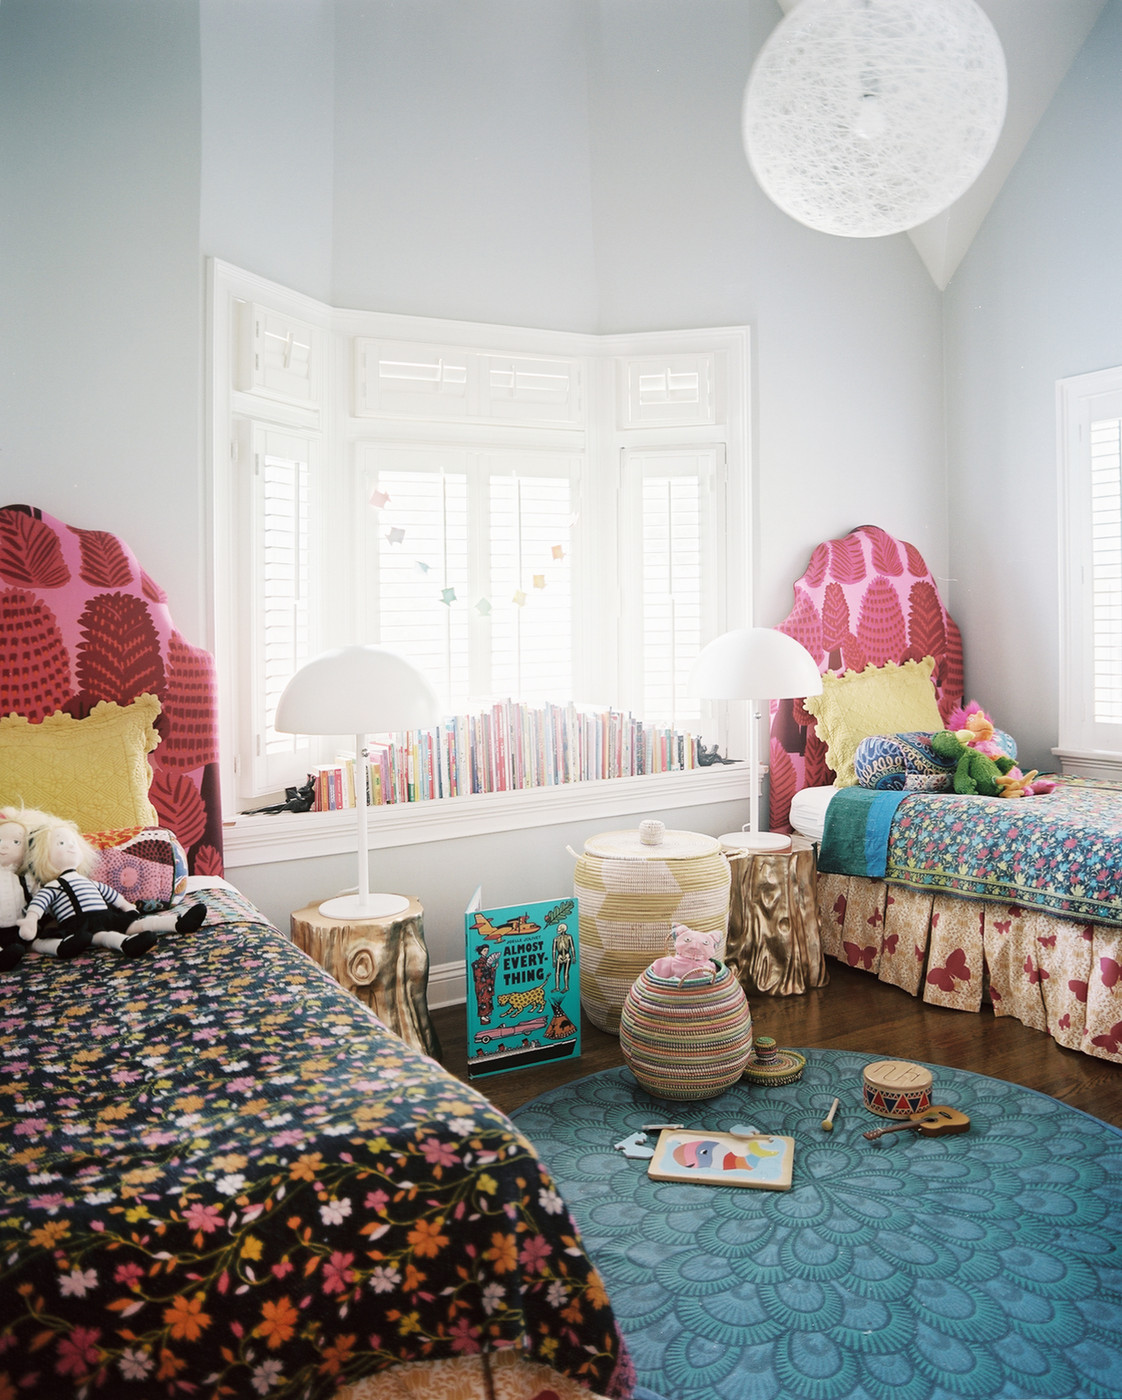 Embrace Whimsy, But Avoid Cuteness - How to Design a Kids ...